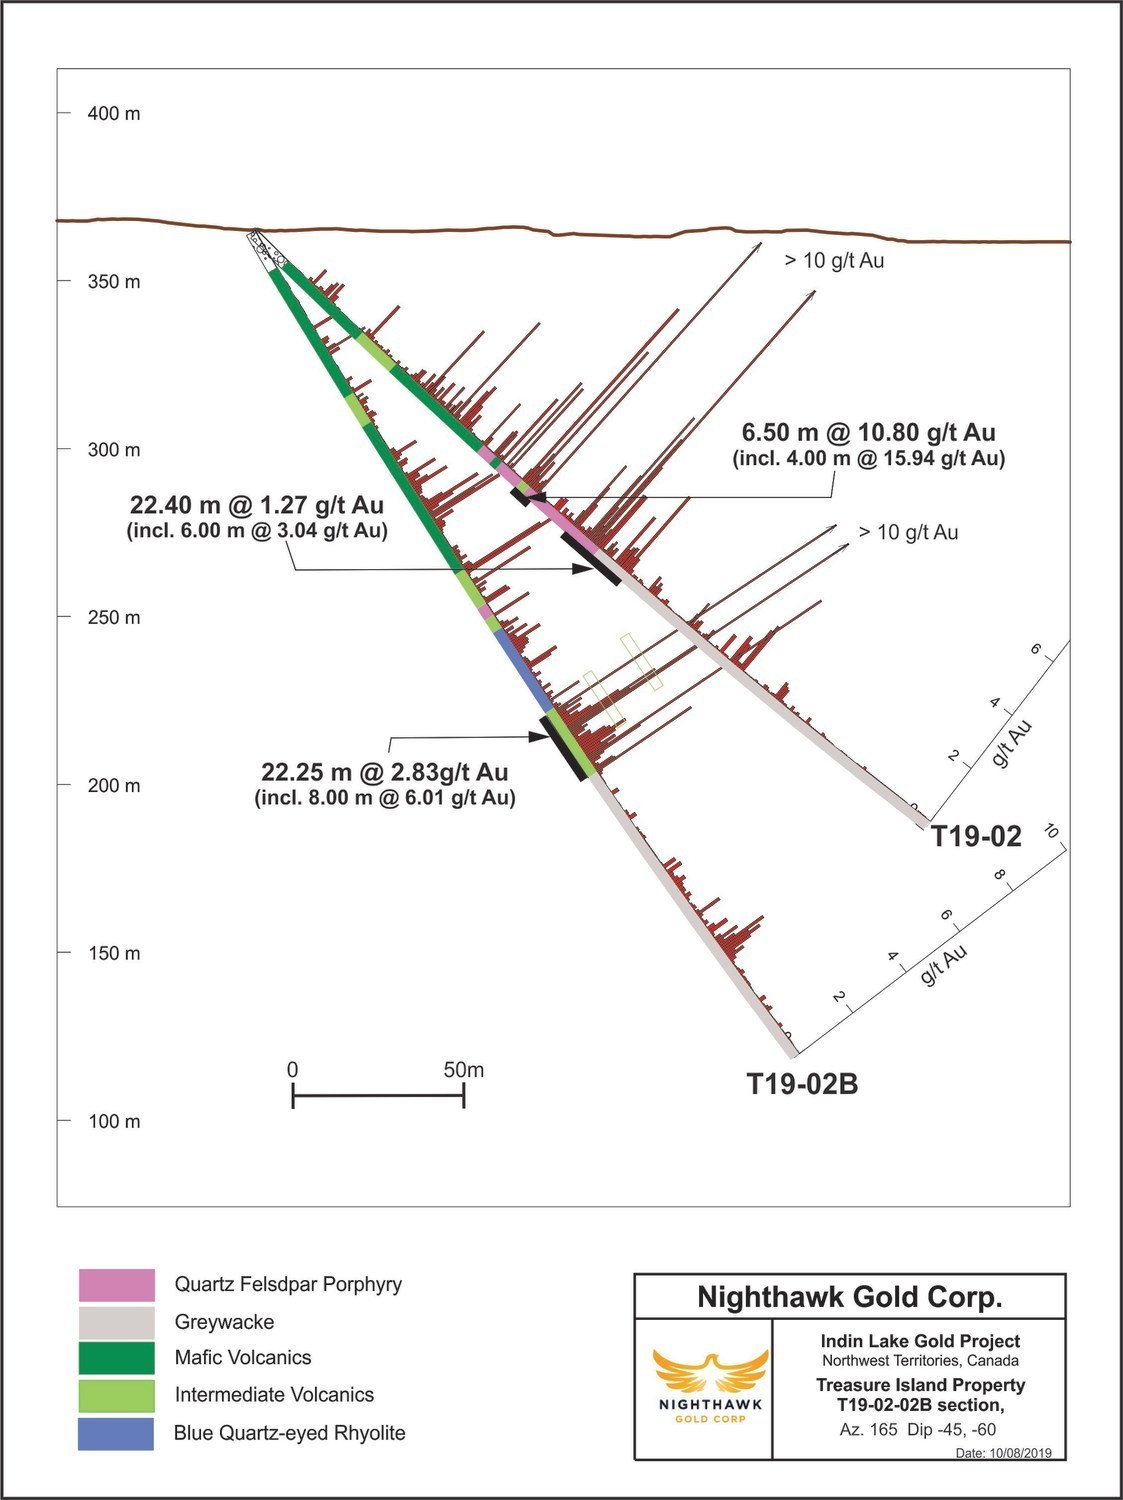 Figure 2. Cross Section – Main Zone - Drillhole T19-02 and T19-02B (CNW Group/Nighthawk Gold Corp.)